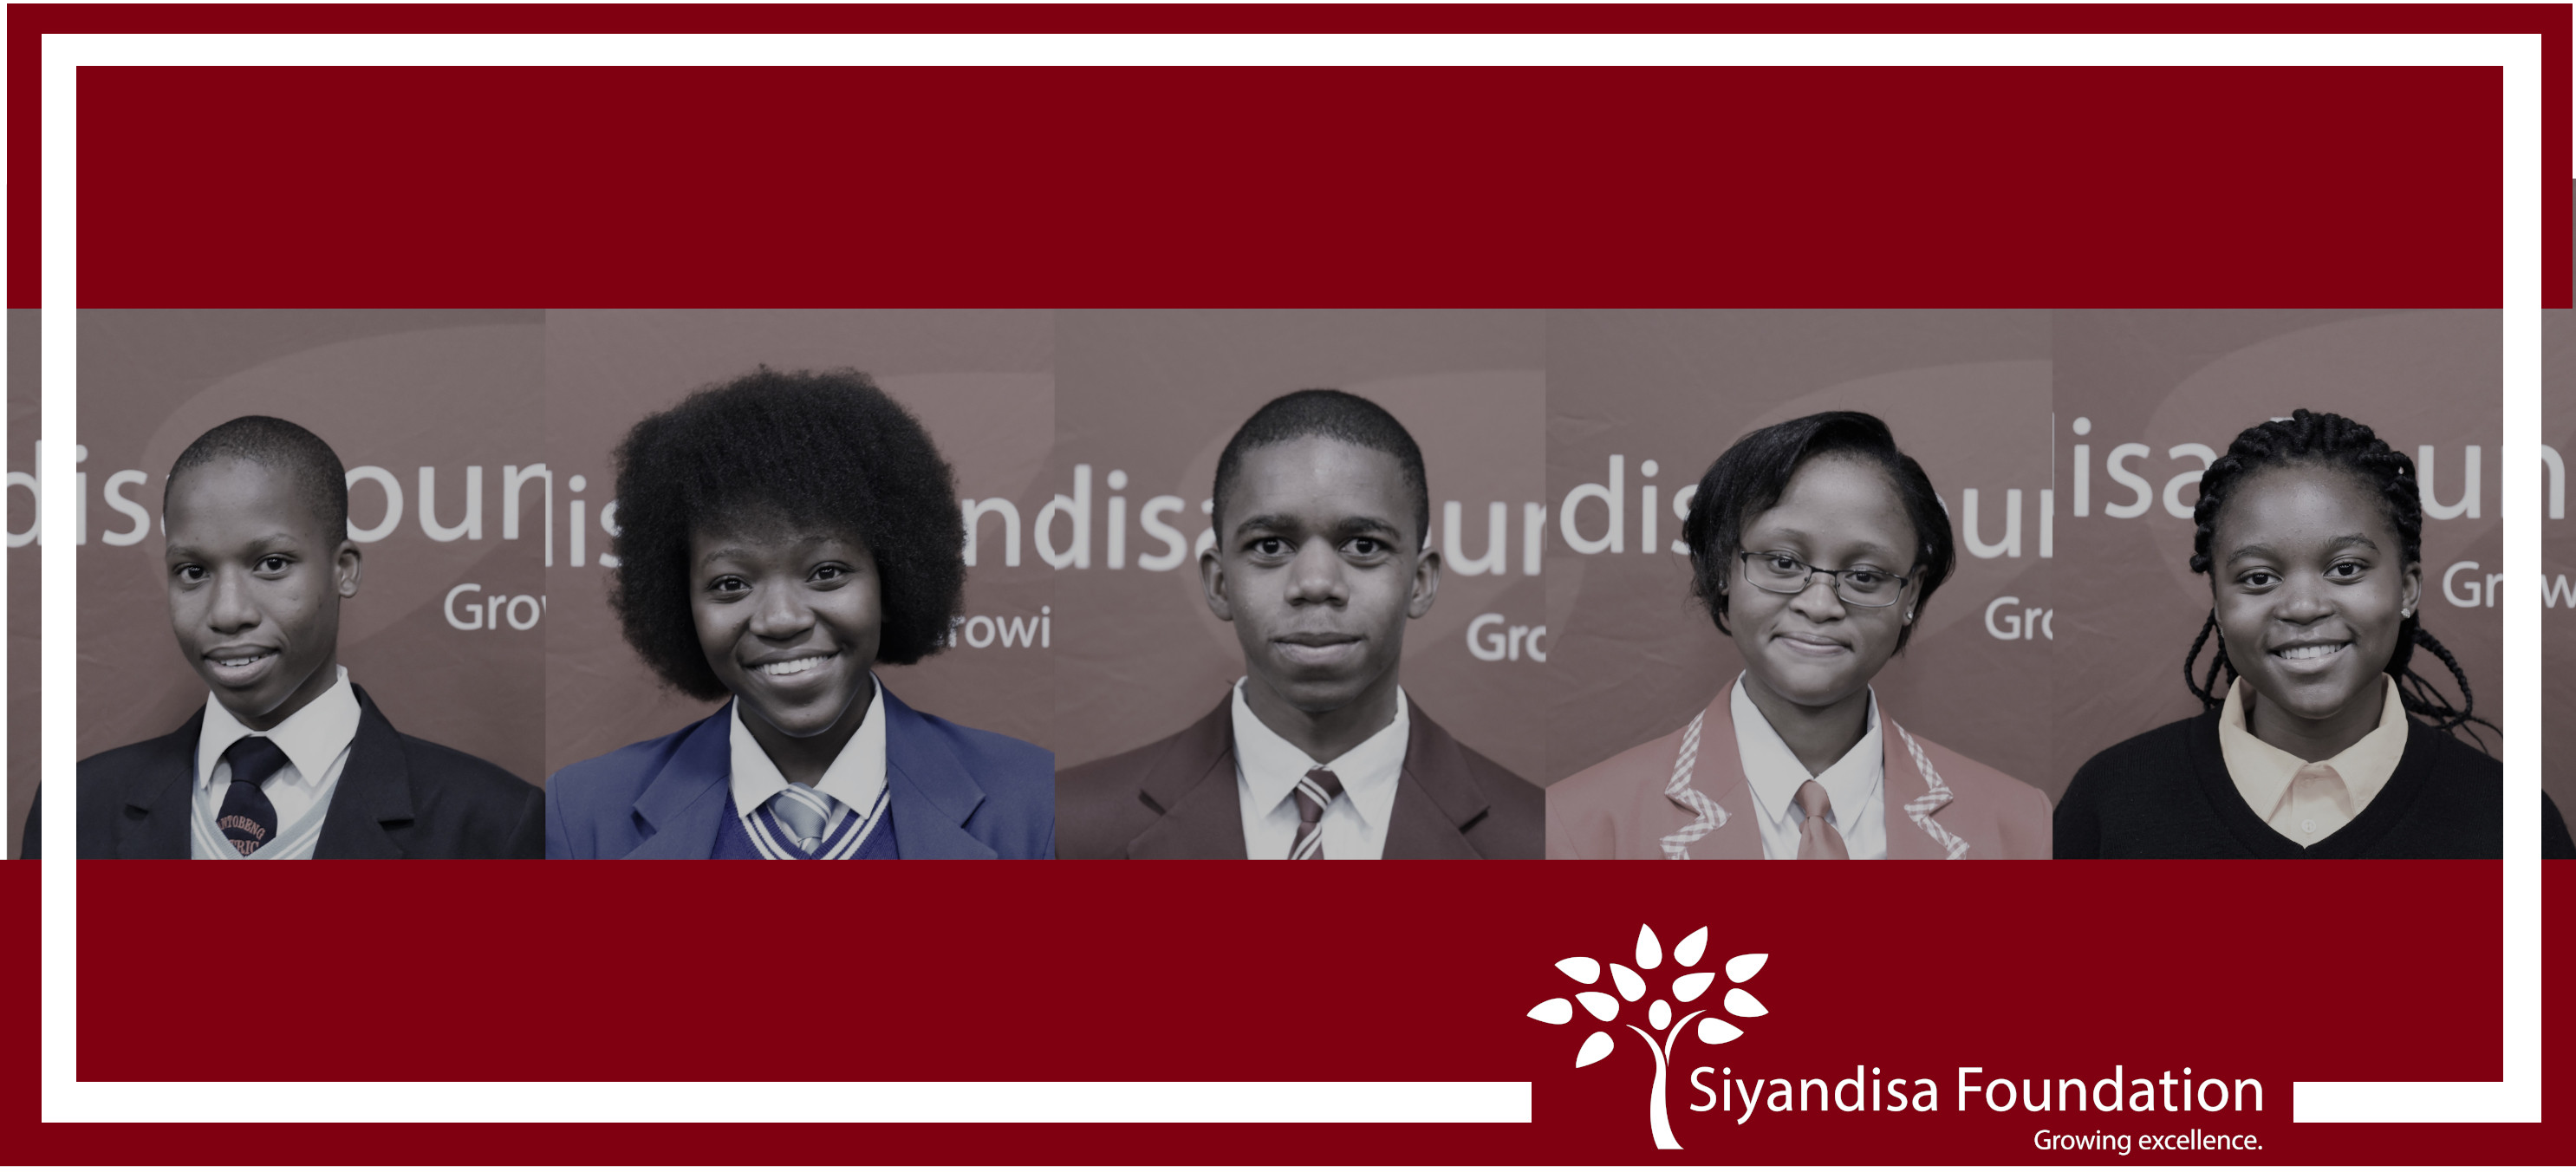 283 distinctions for Siyandisa's Class of 2019